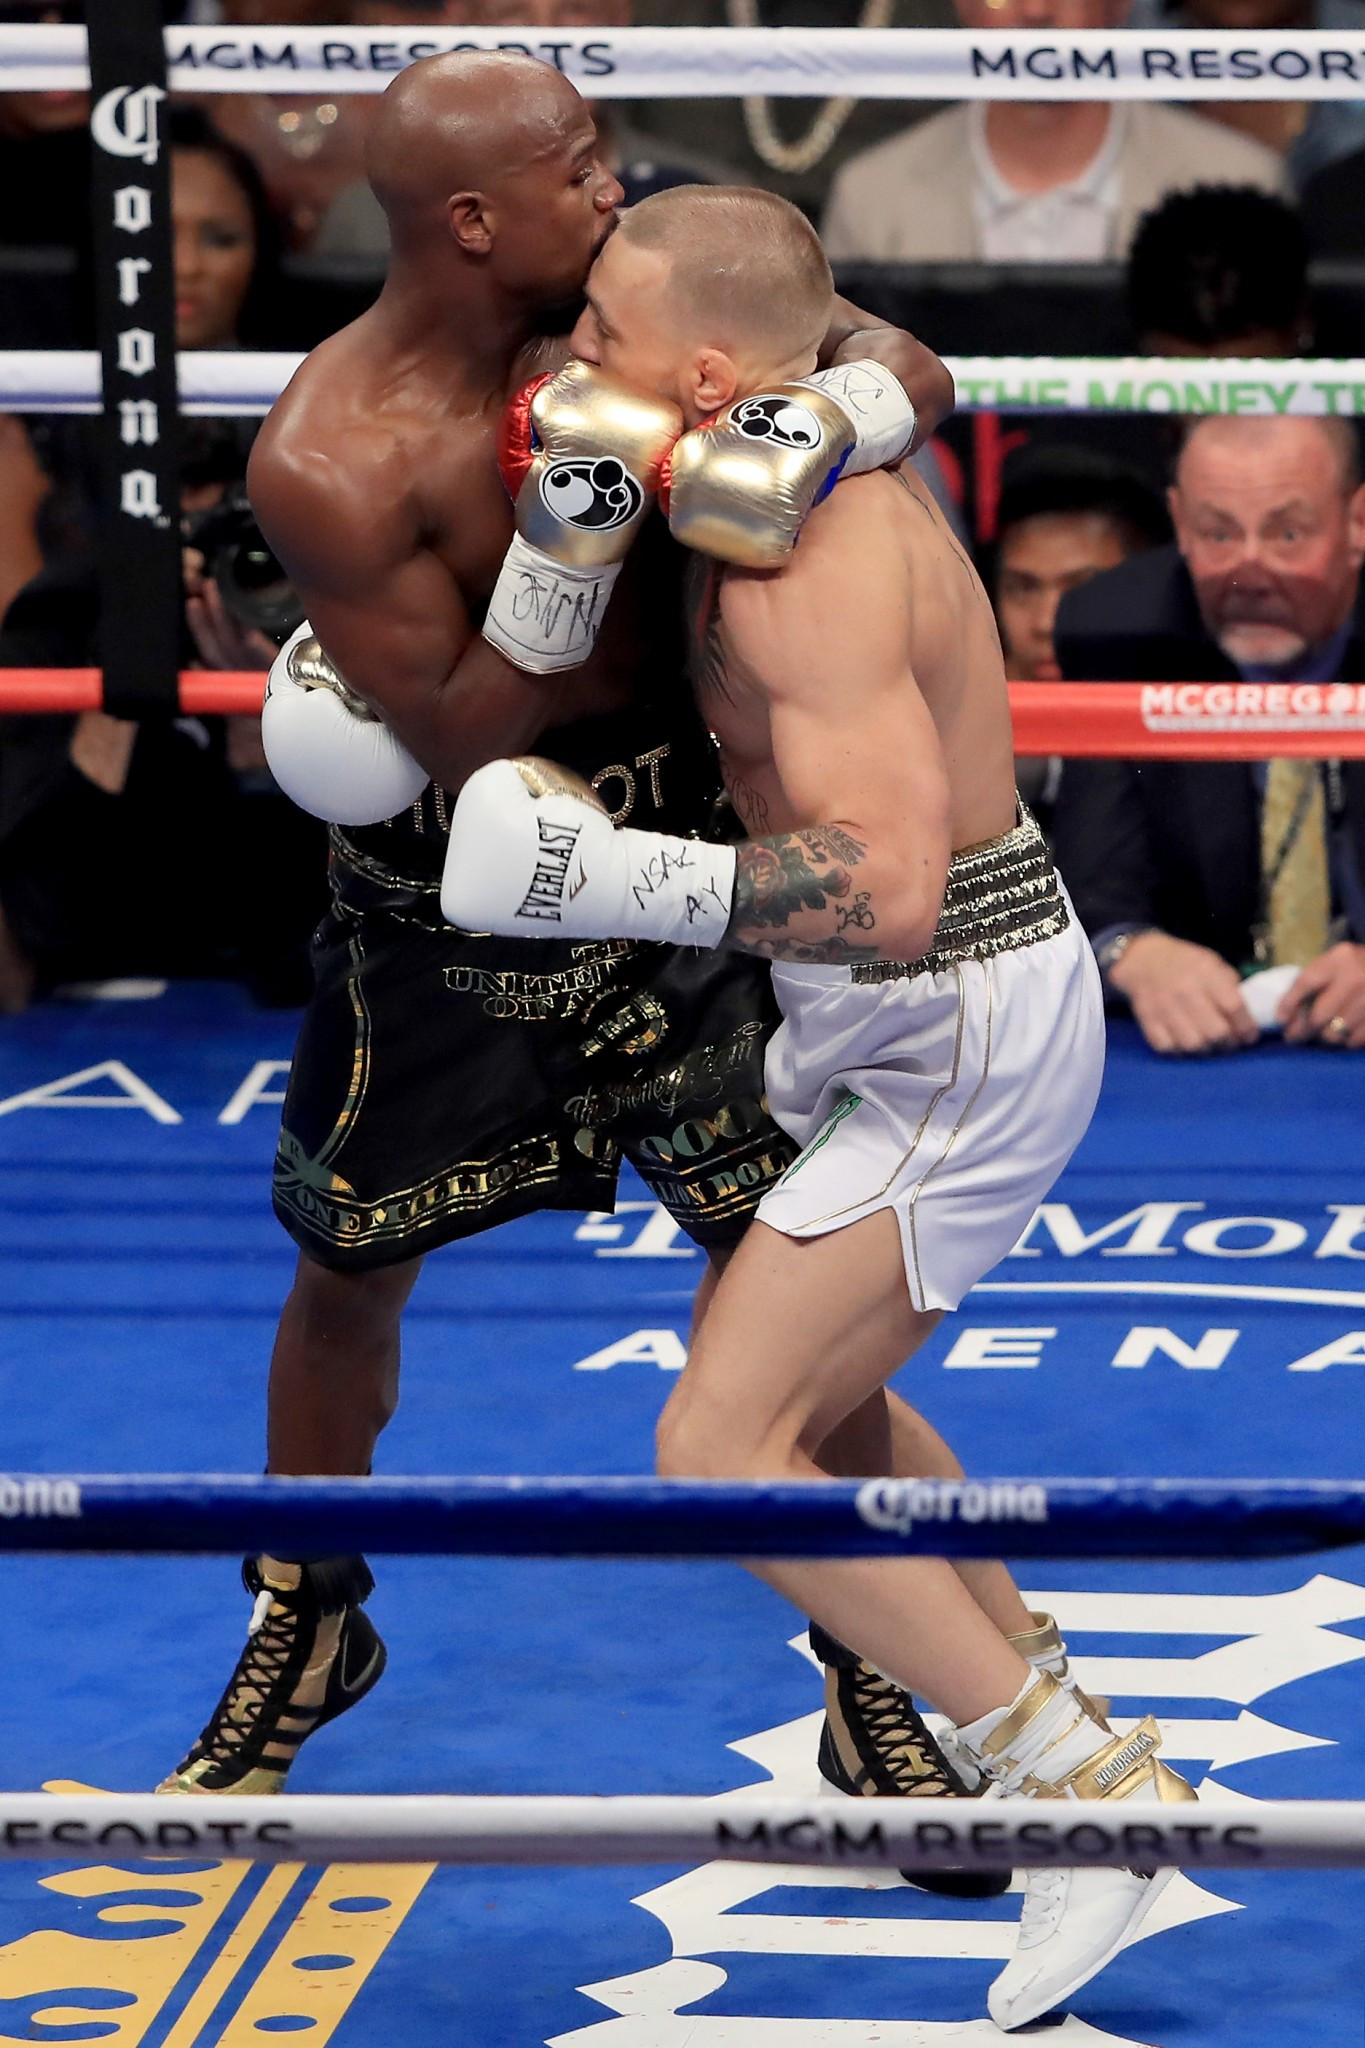 Floyd Mayweather Jr throws a punch at Conor McGregor during their boxing match ©Getty Images